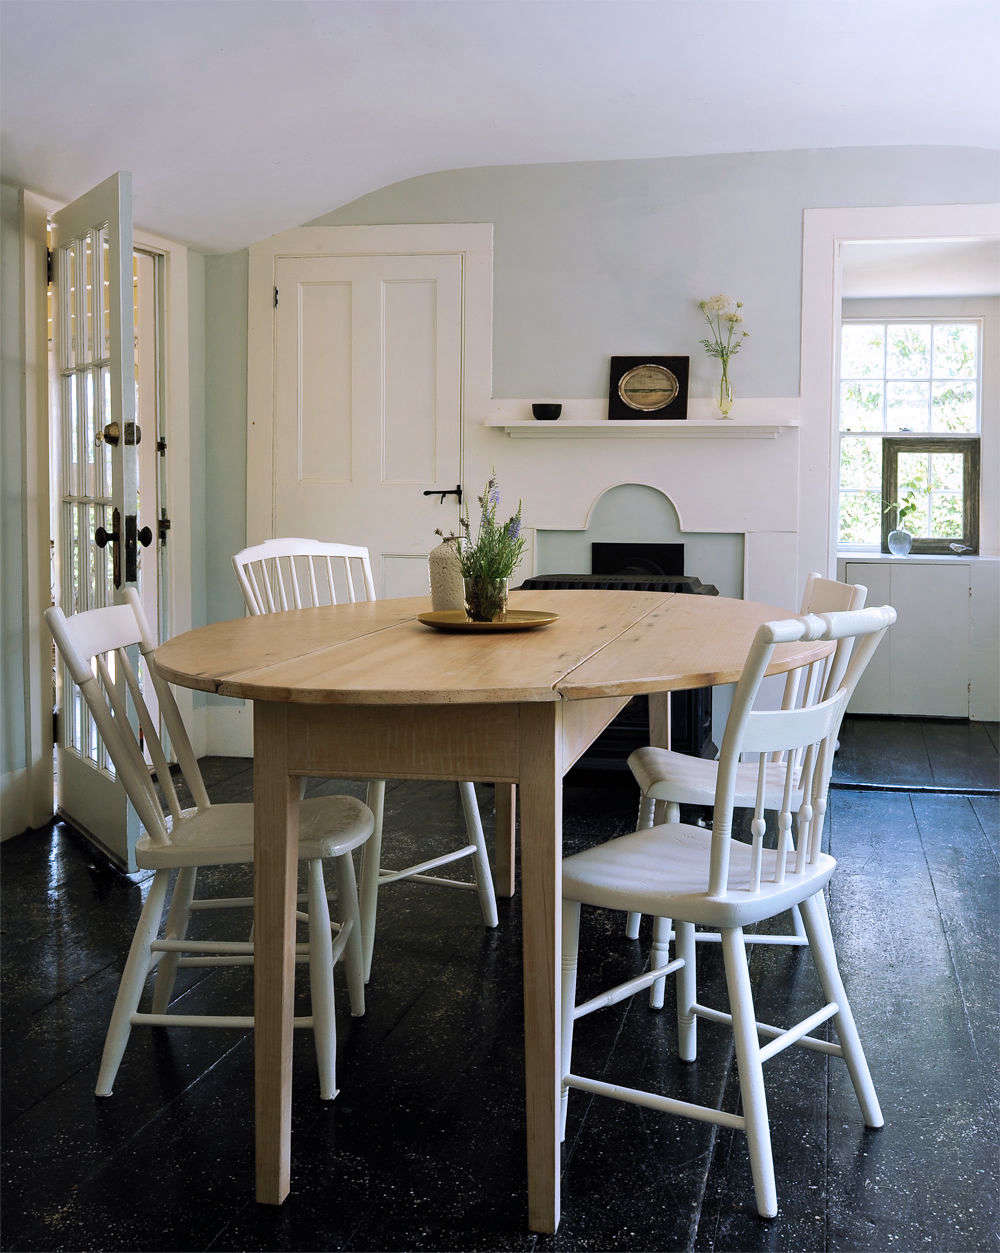 Justine Hand Cottage Cape Cod Dining Room